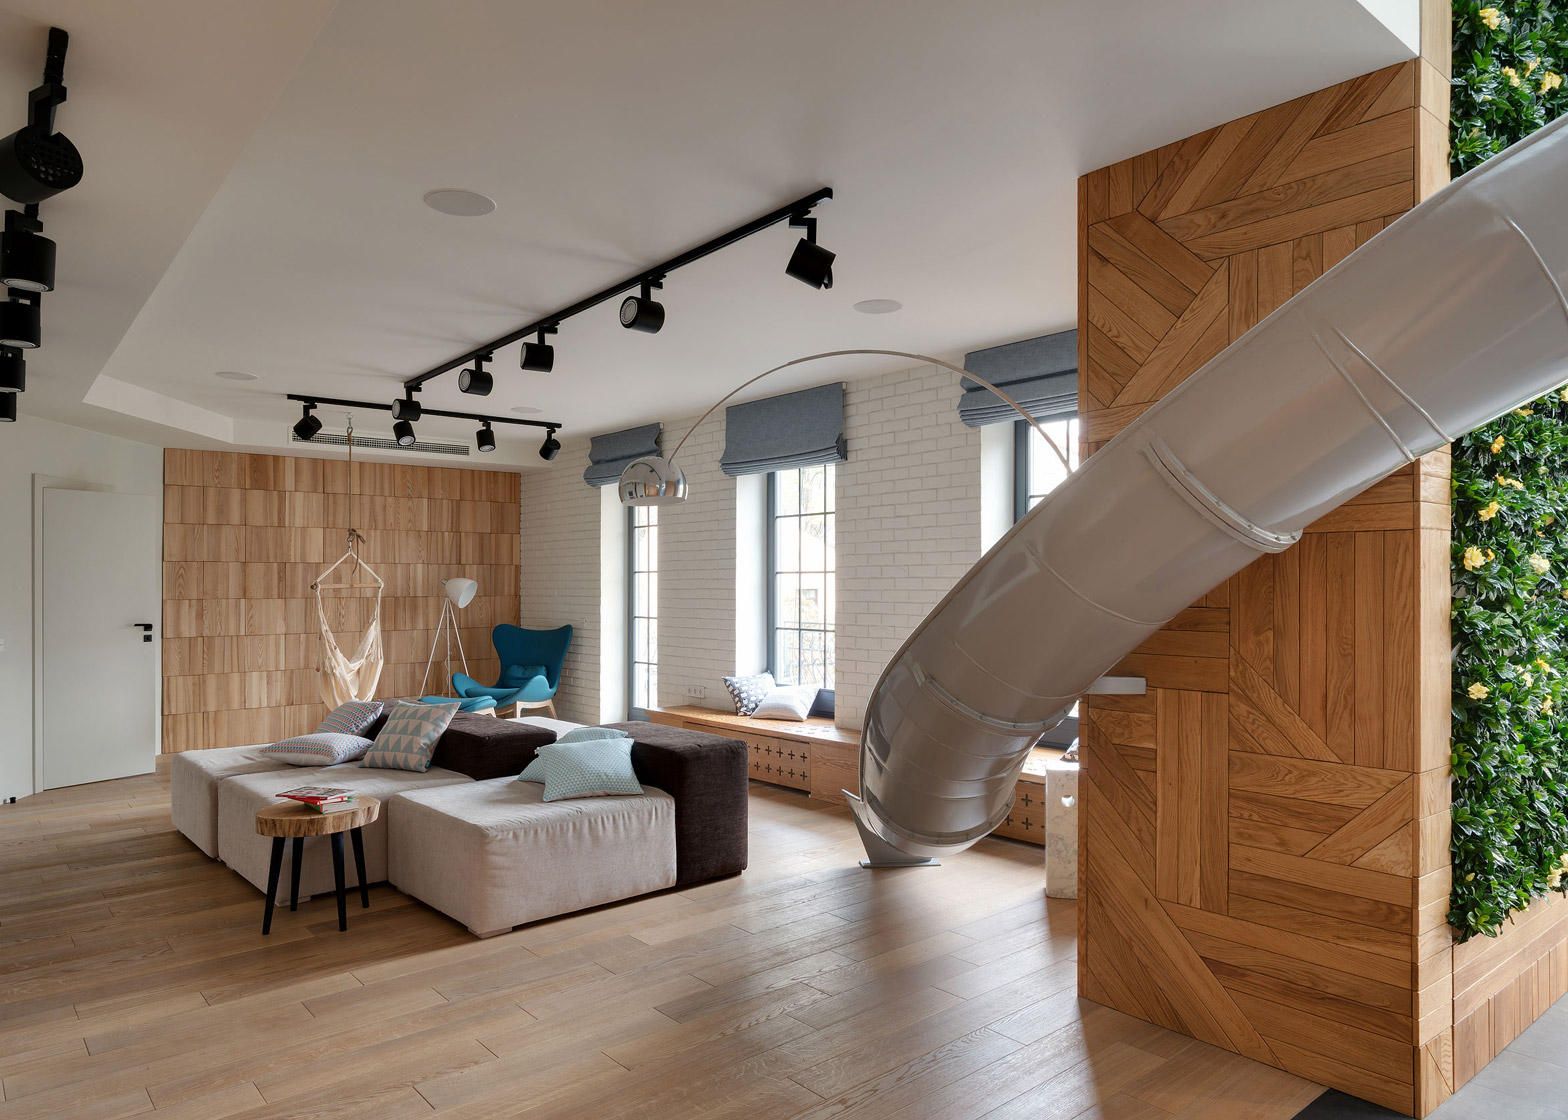 2 Of 19; Apartment With A Slide By KI Design Studio